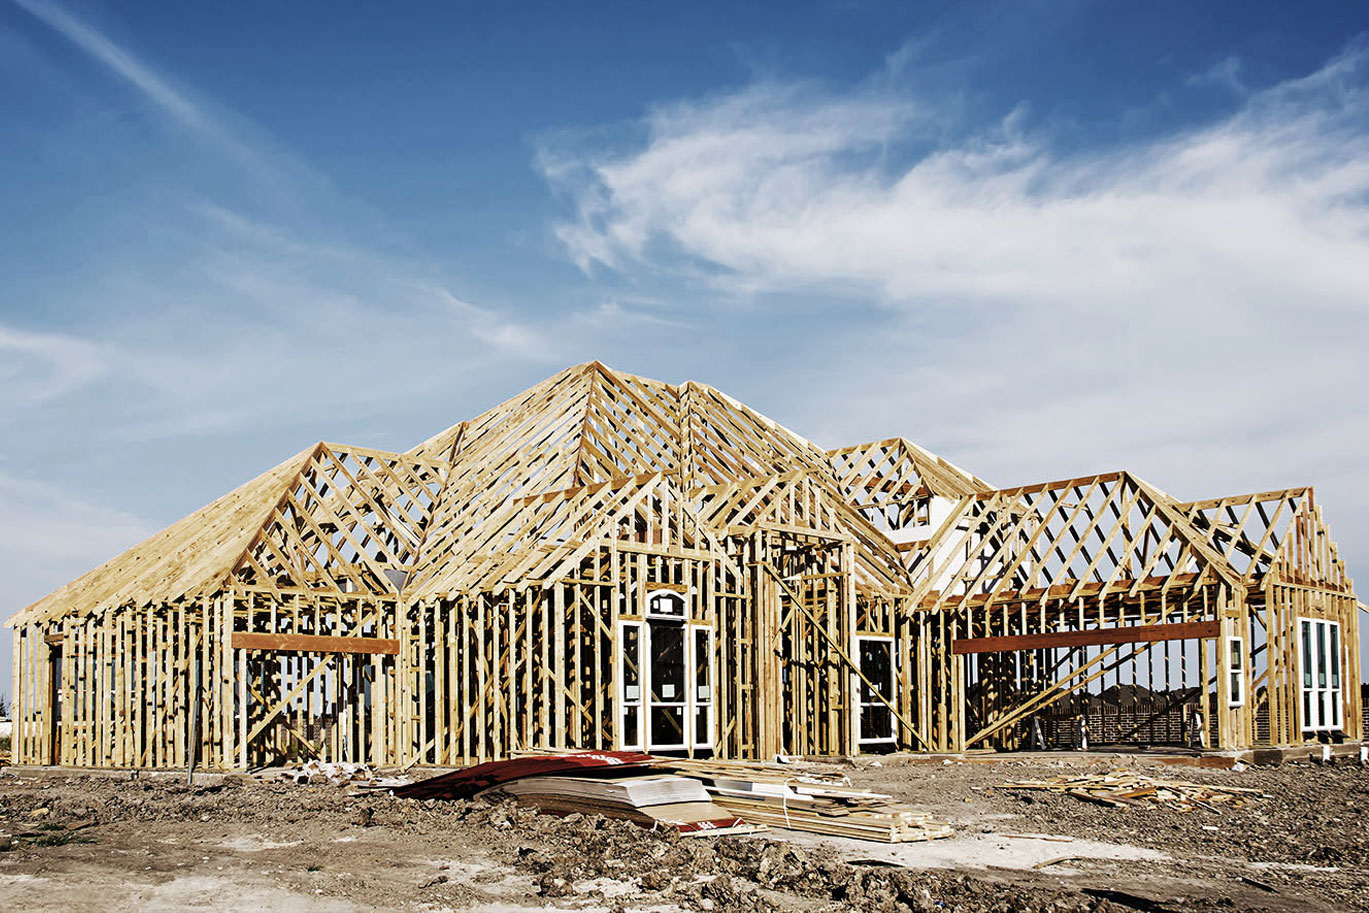 STEP SIXFraming & Rough-in - Your dream starts to take shape. We build a solid structure for your custom home using sustainable materials and quality production that will stand the test of time.